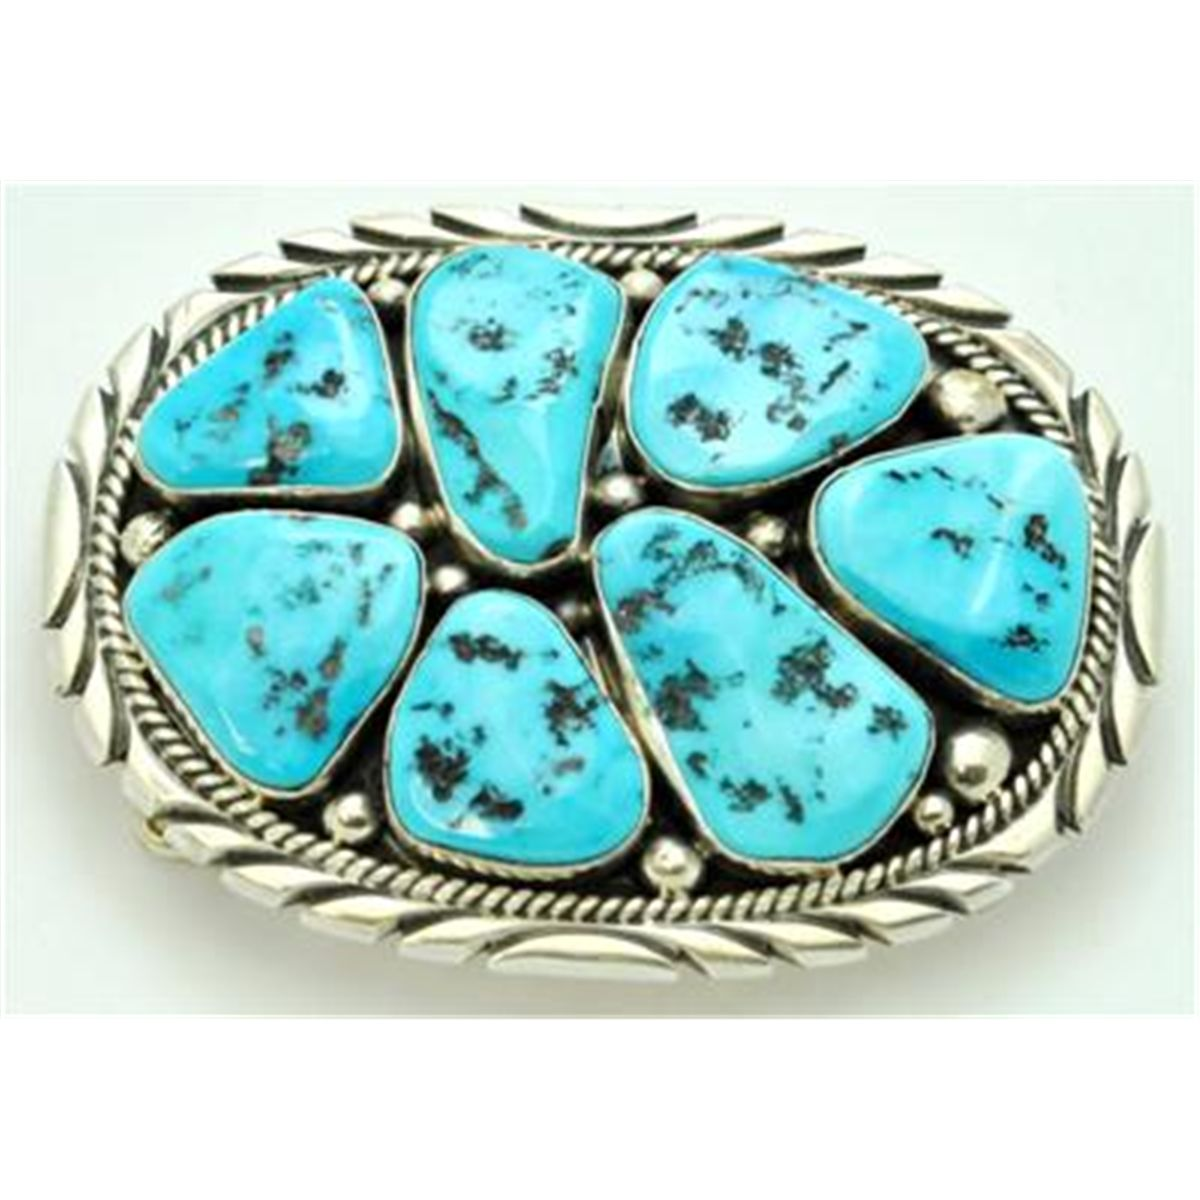 Sleeping Beauty Turquoise from Globe, Arizona